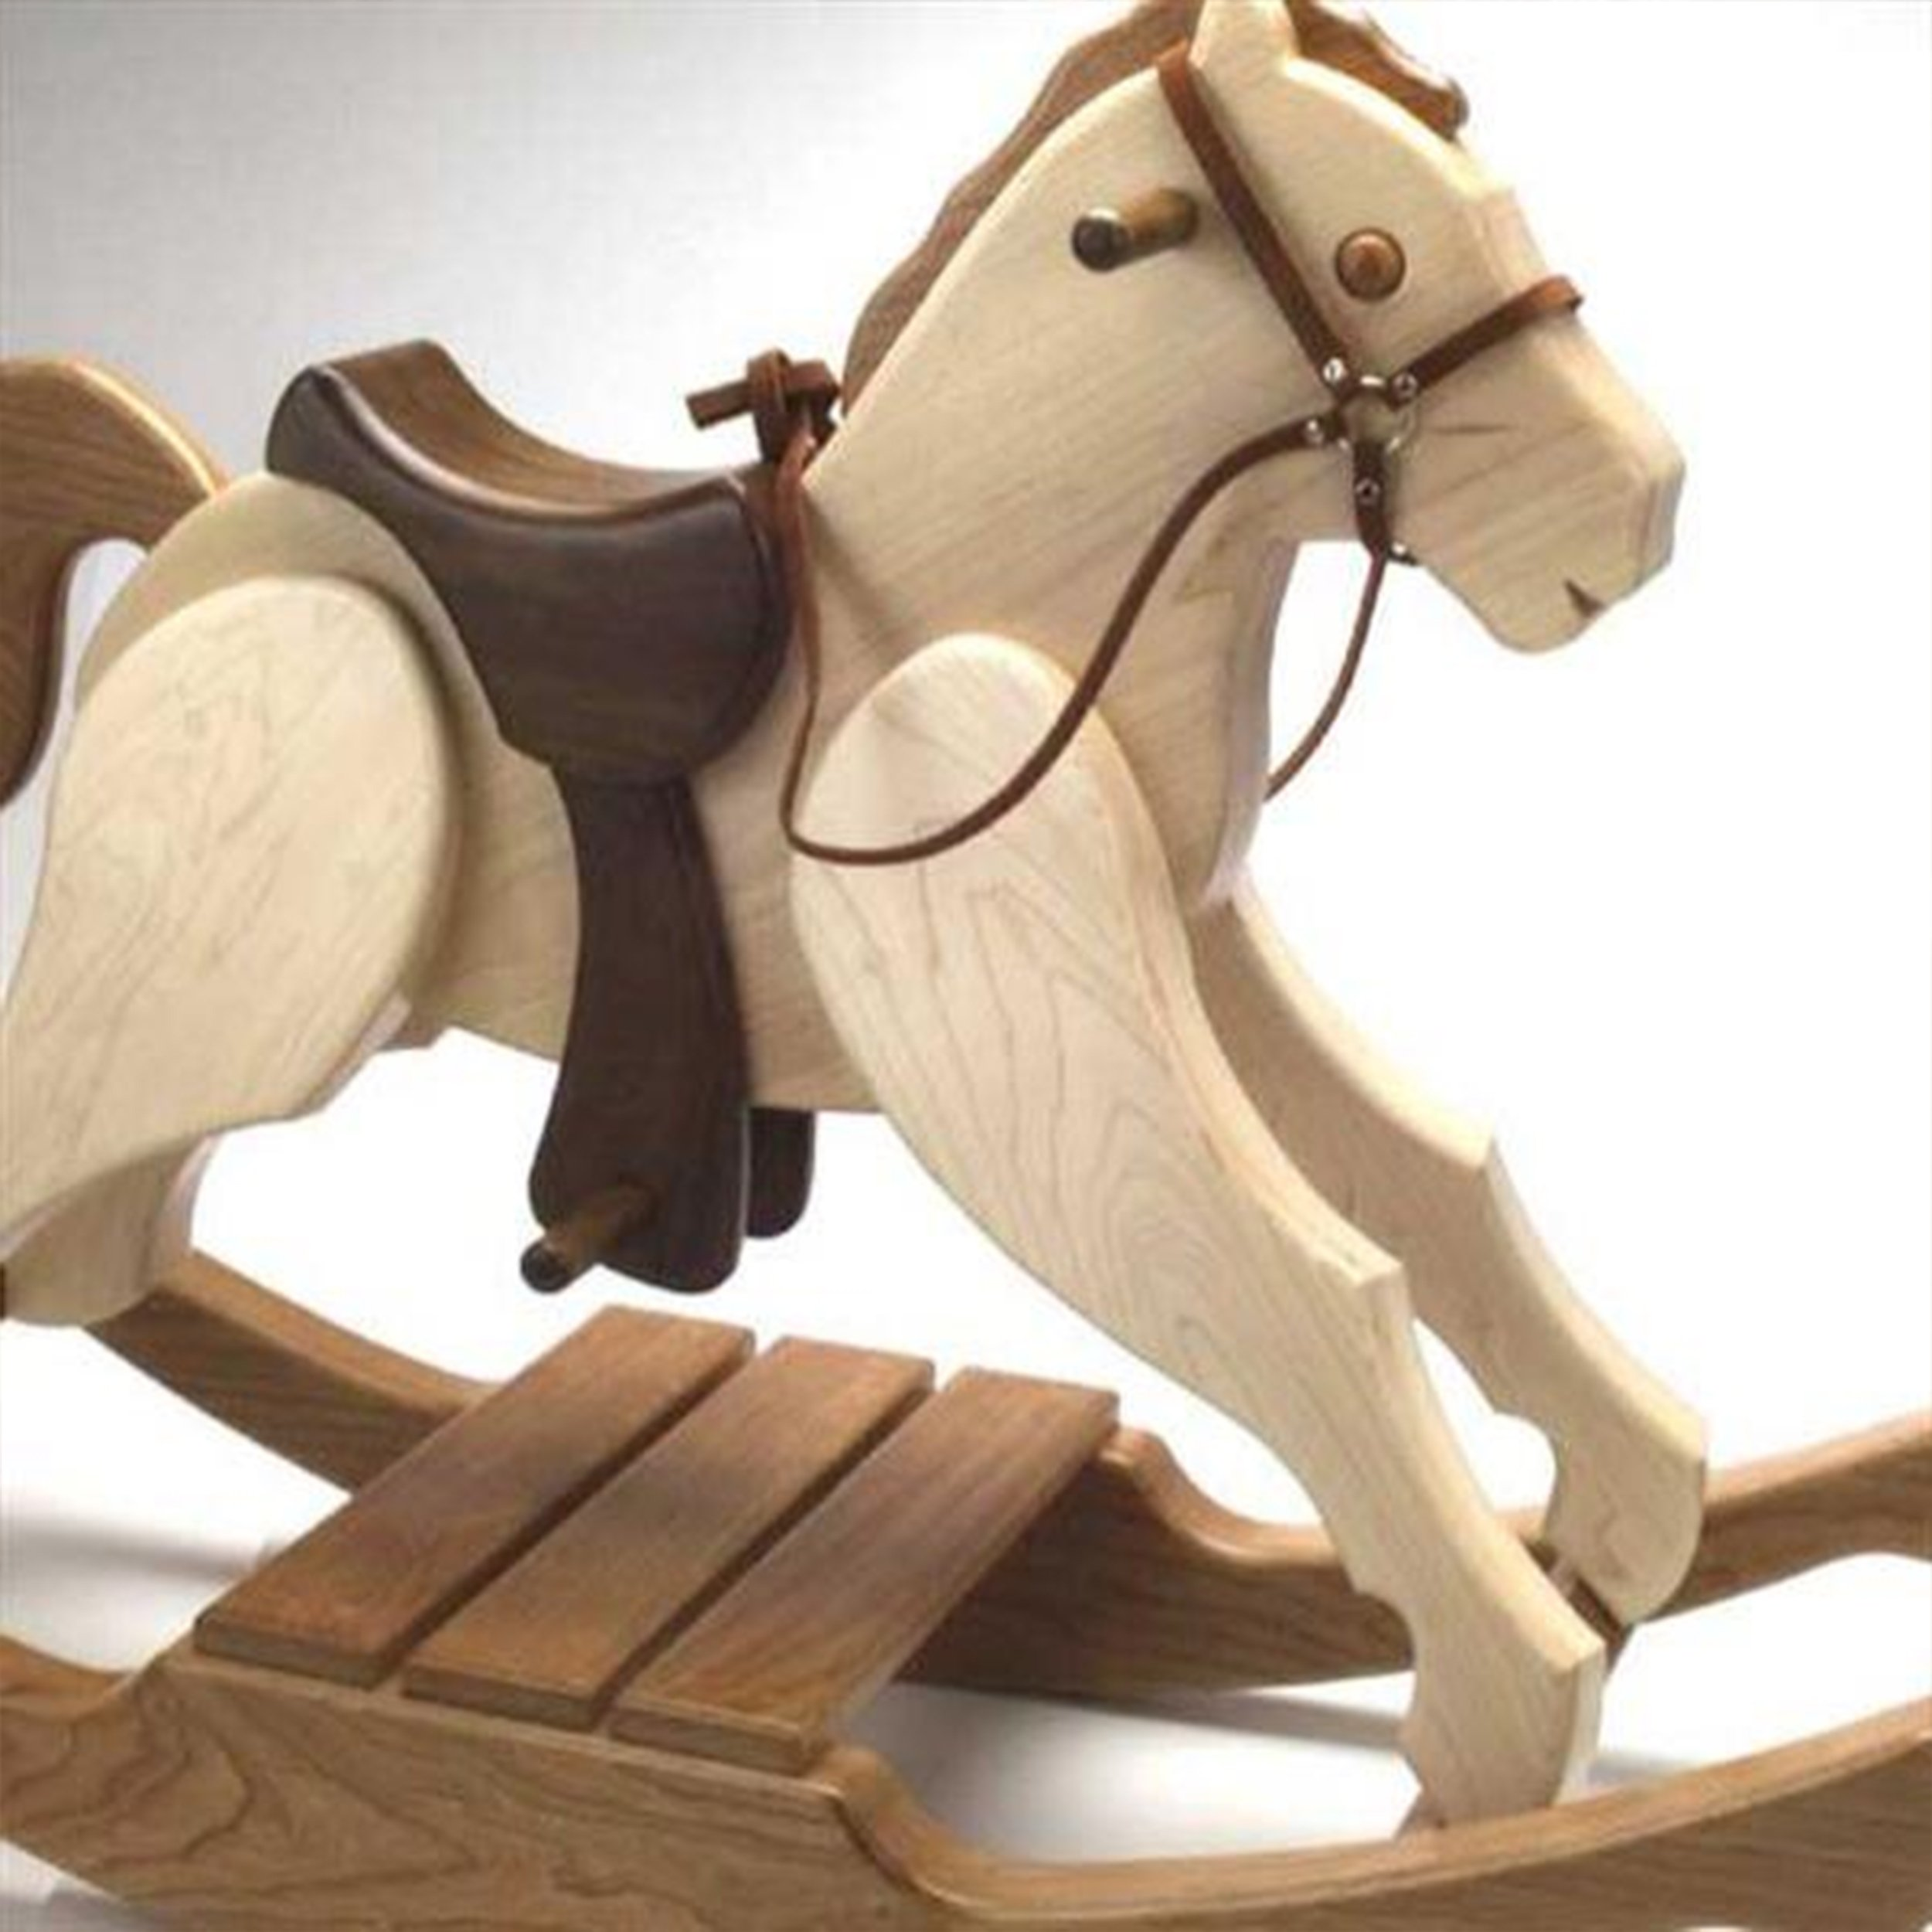 Woodworking Project Paper Plan to Build Rocking Pony by Woodcraft Magazine